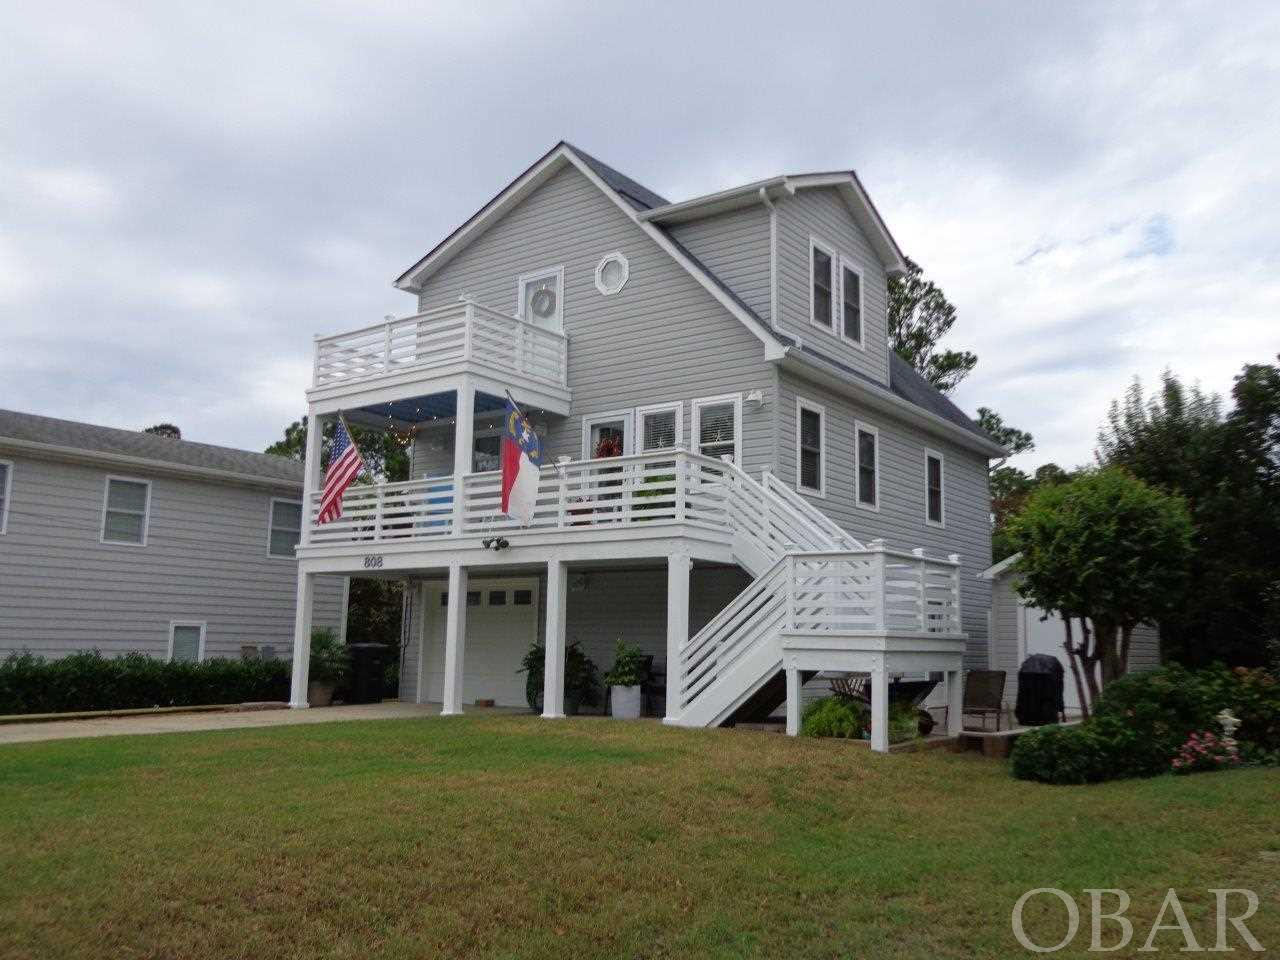 Sportsman Drive, Kill Devil Hills, NC 27948, 3 Bedrooms Bedrooms, ,3 BathroomsBathrooms,Residential,For sale,Sportsman Drive,102360